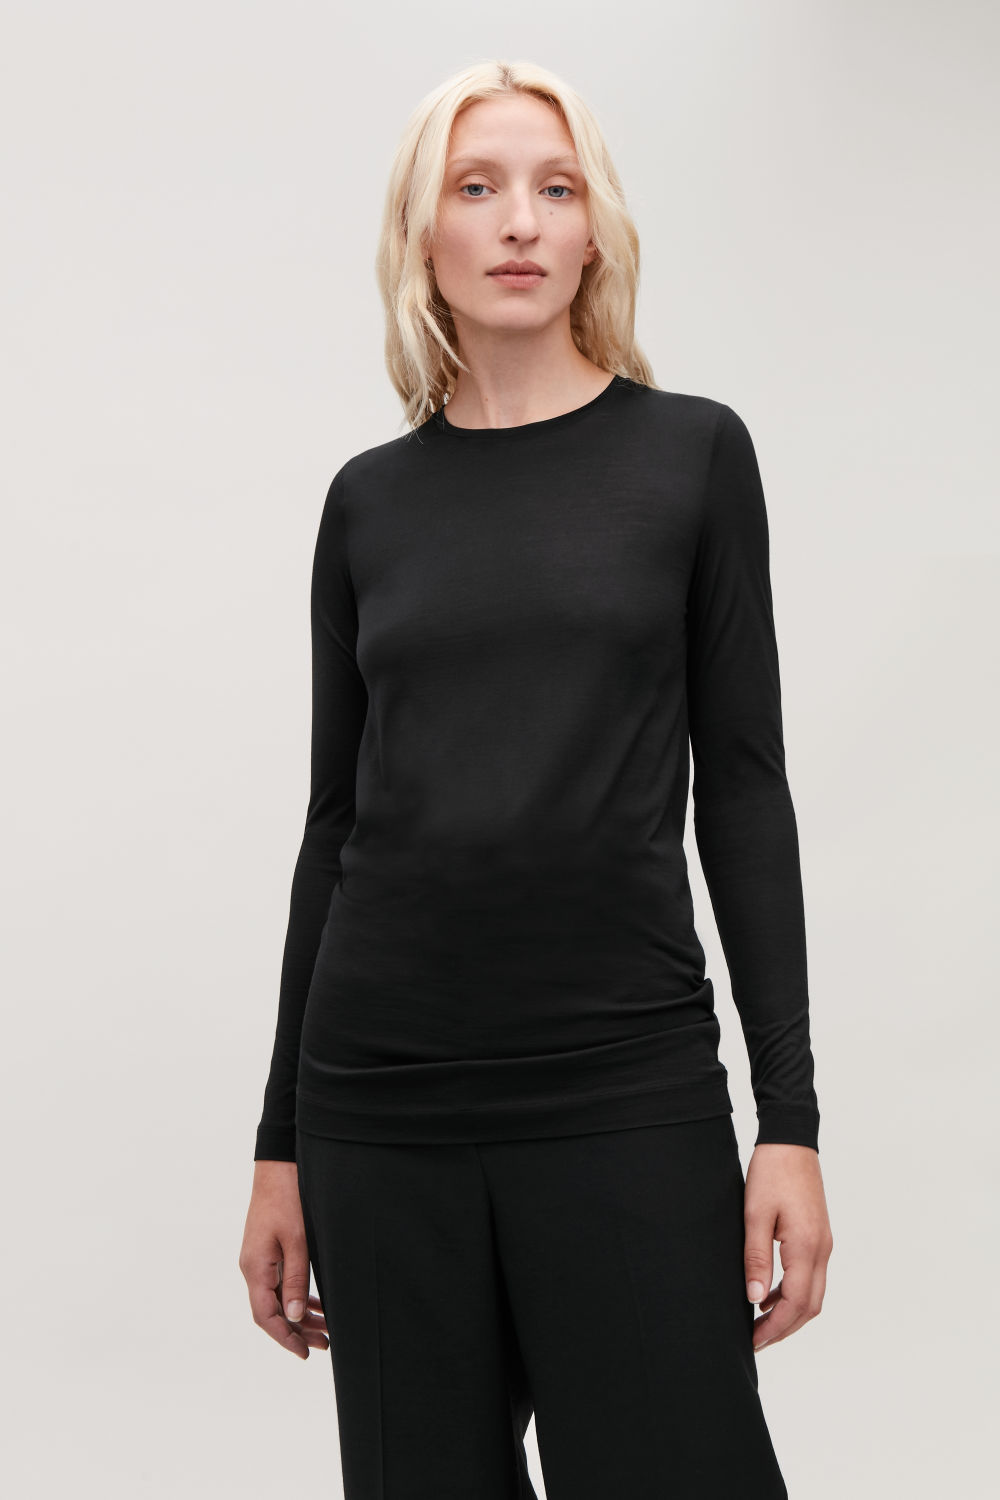 SILK JERSEY LONG-SLEEVED TOP